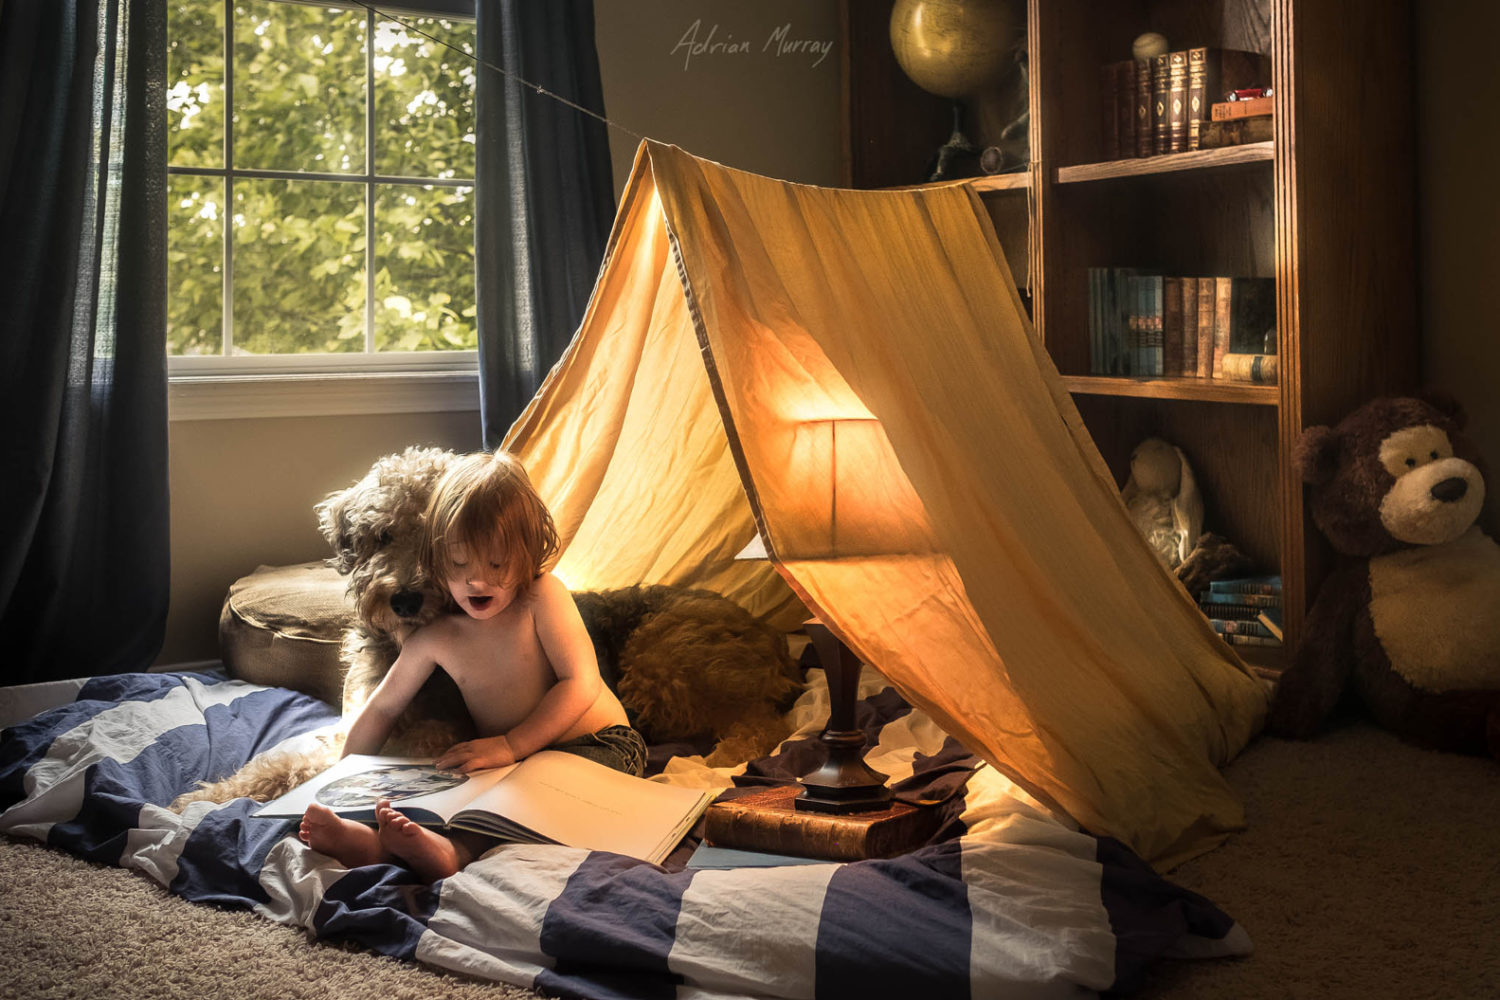 Interview: First Look At Family Photographer Adrian Murray's Upcoming Book